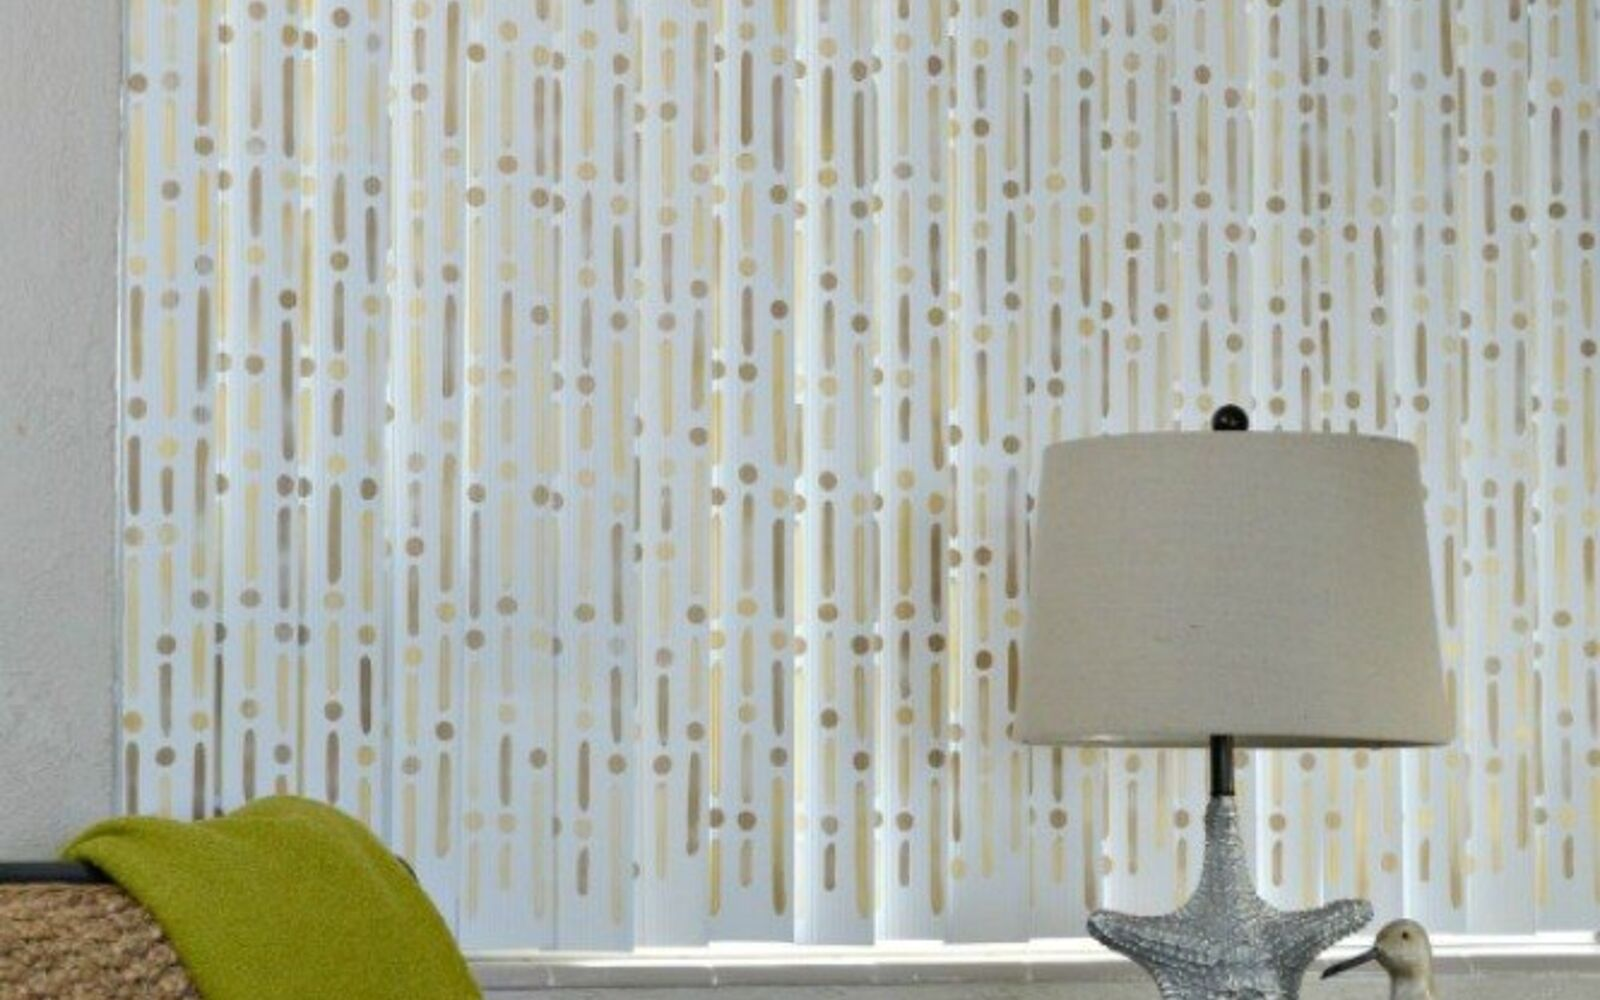 s 14 glamorous ways to upgrade your home using stencils, home decor, Redo your boring blinds into elegant shades